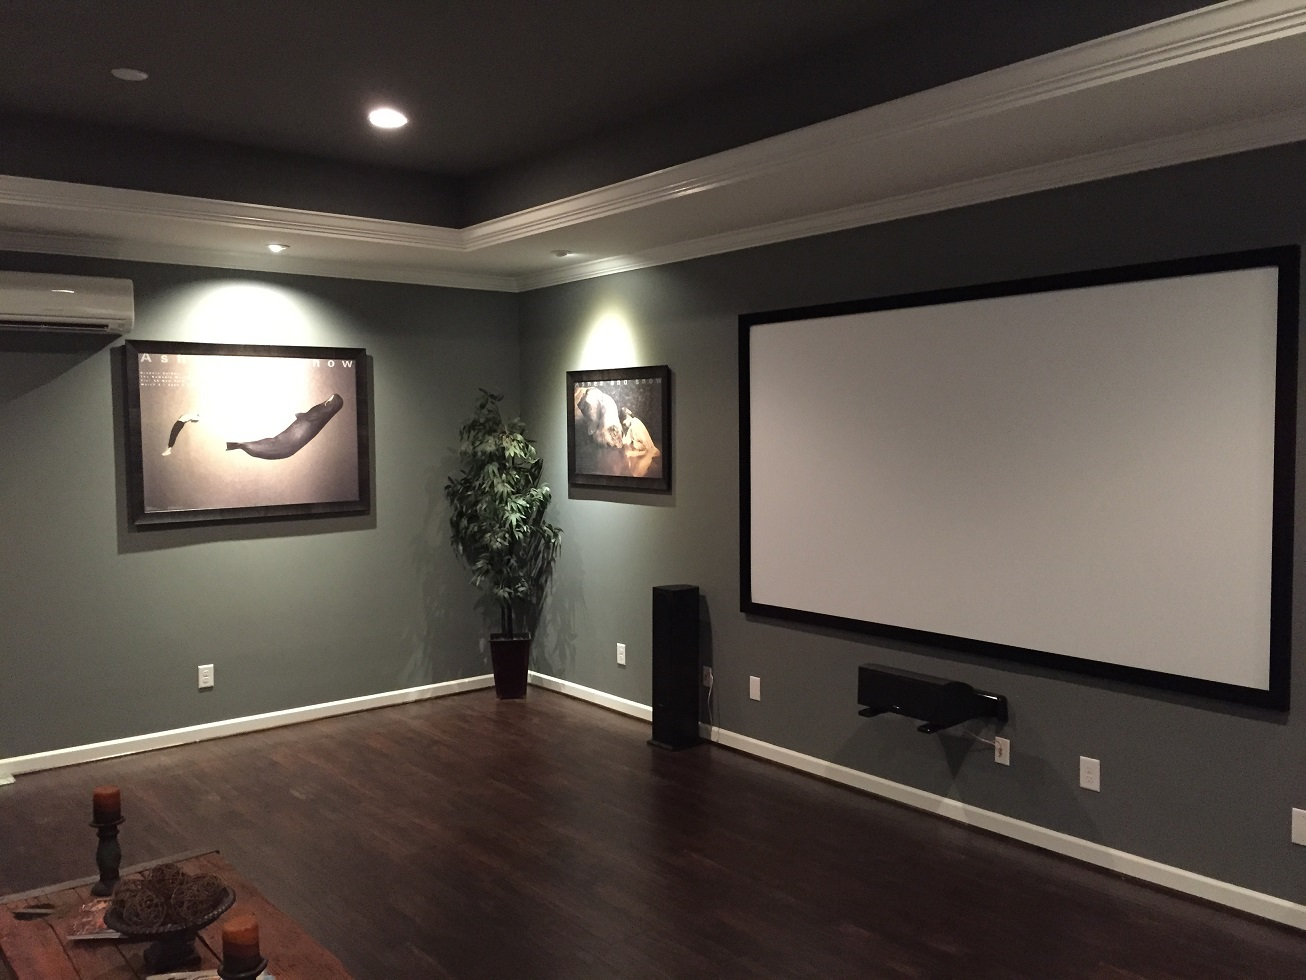 A look at the completed media room